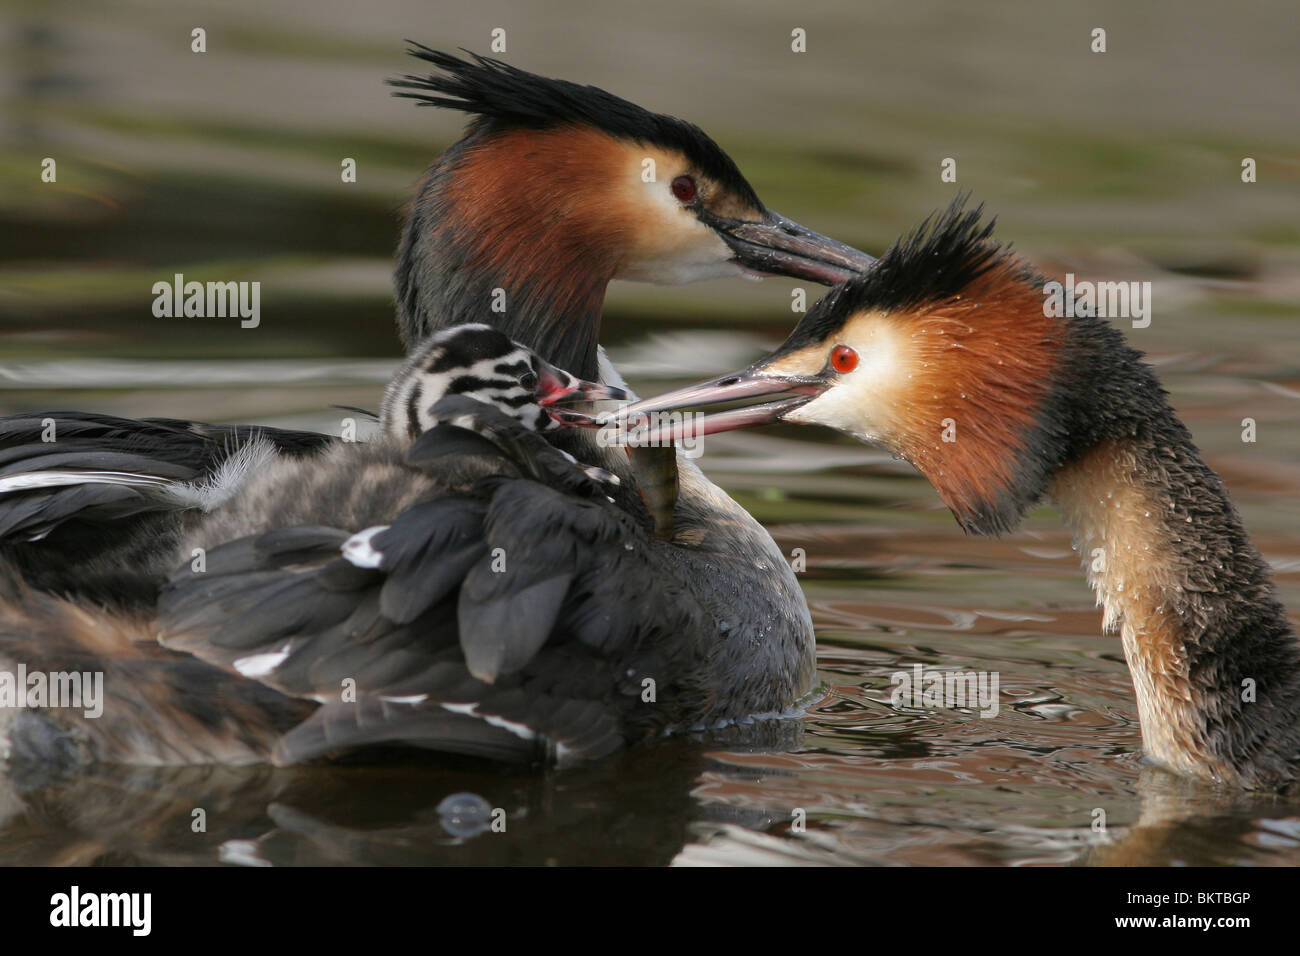 Futengezin zorgt voor jong; Pair of Great Crested Grebes takes care of young - Stock Image